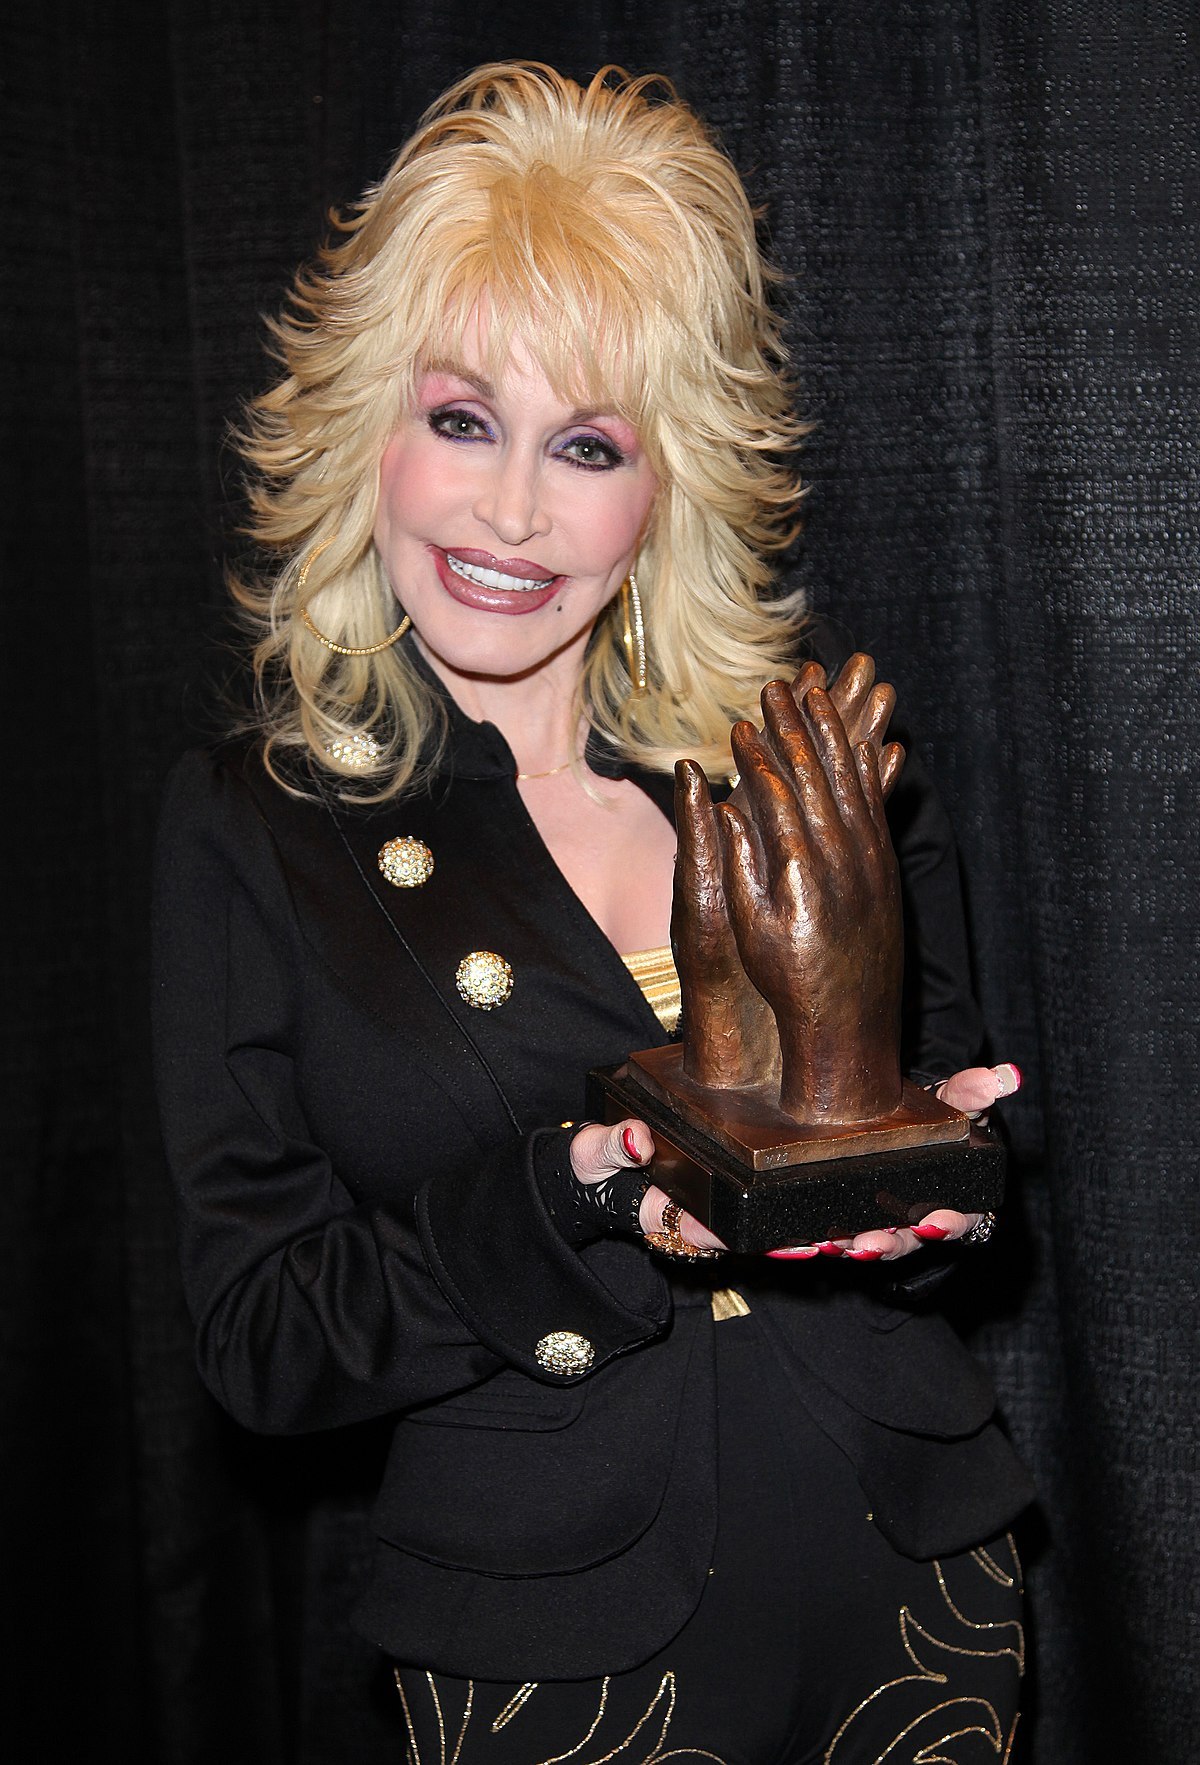 Dolly Parton encourages people to keep the faith during